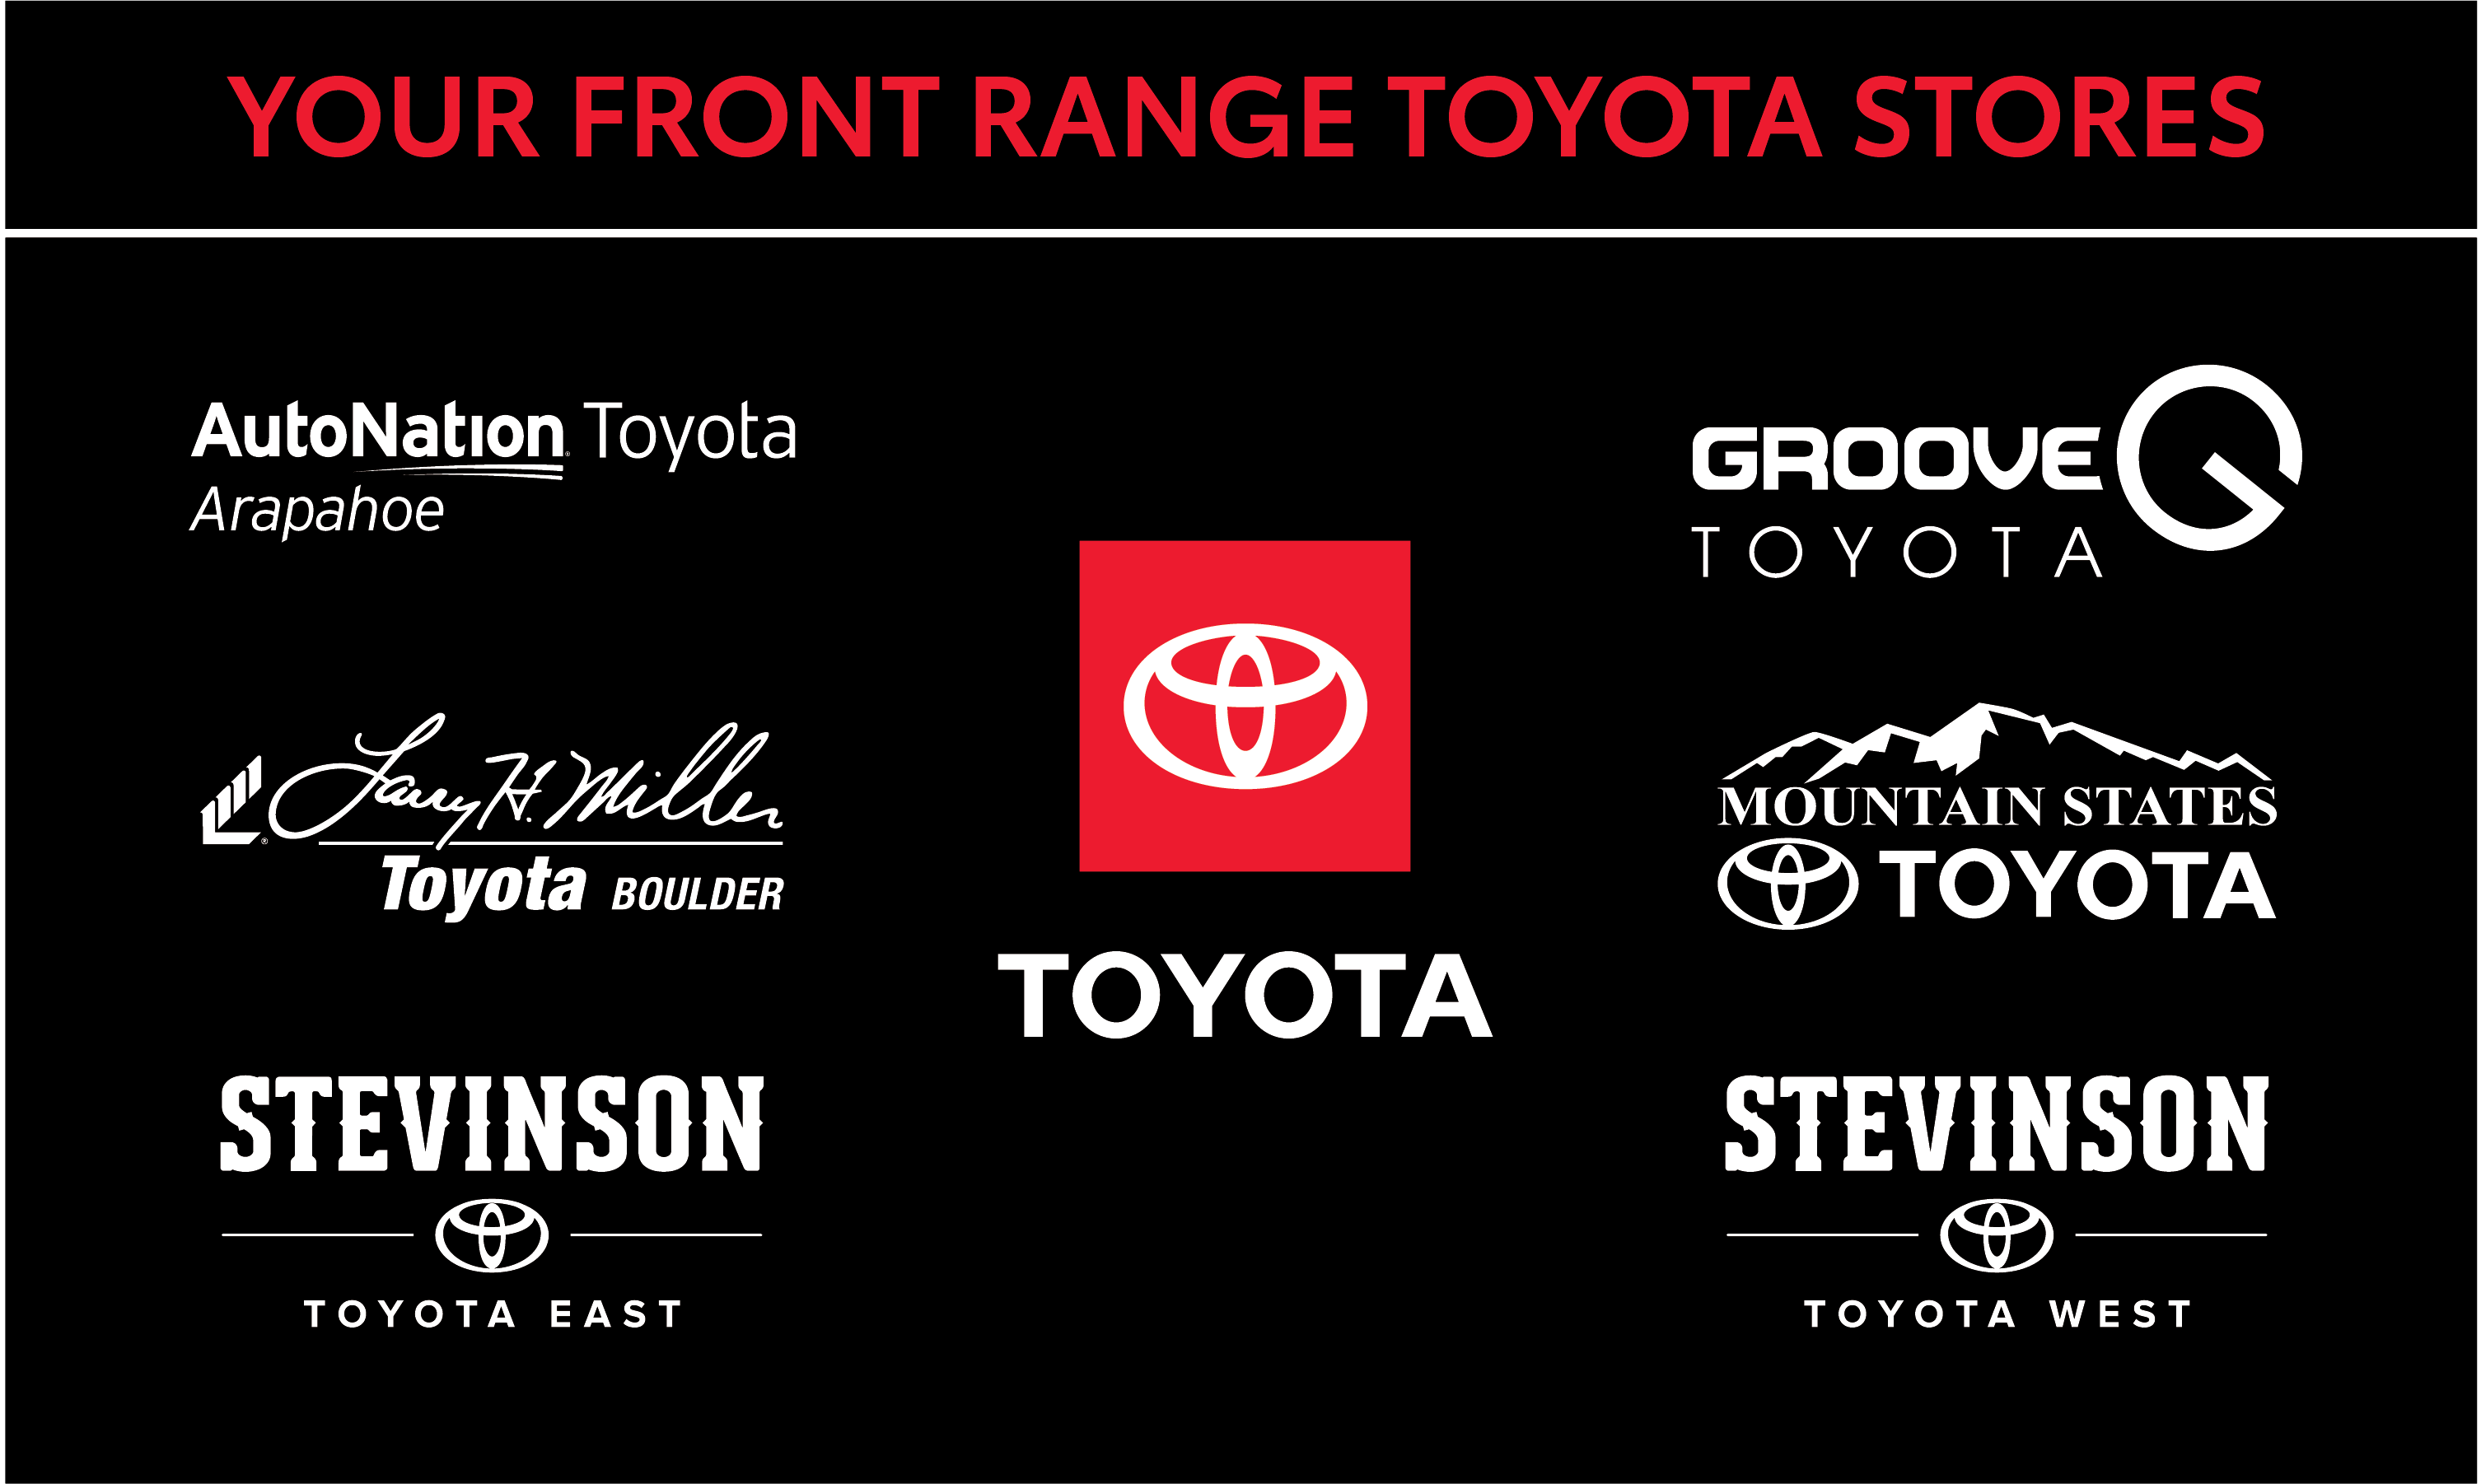 Your Front Range Toyota Stores